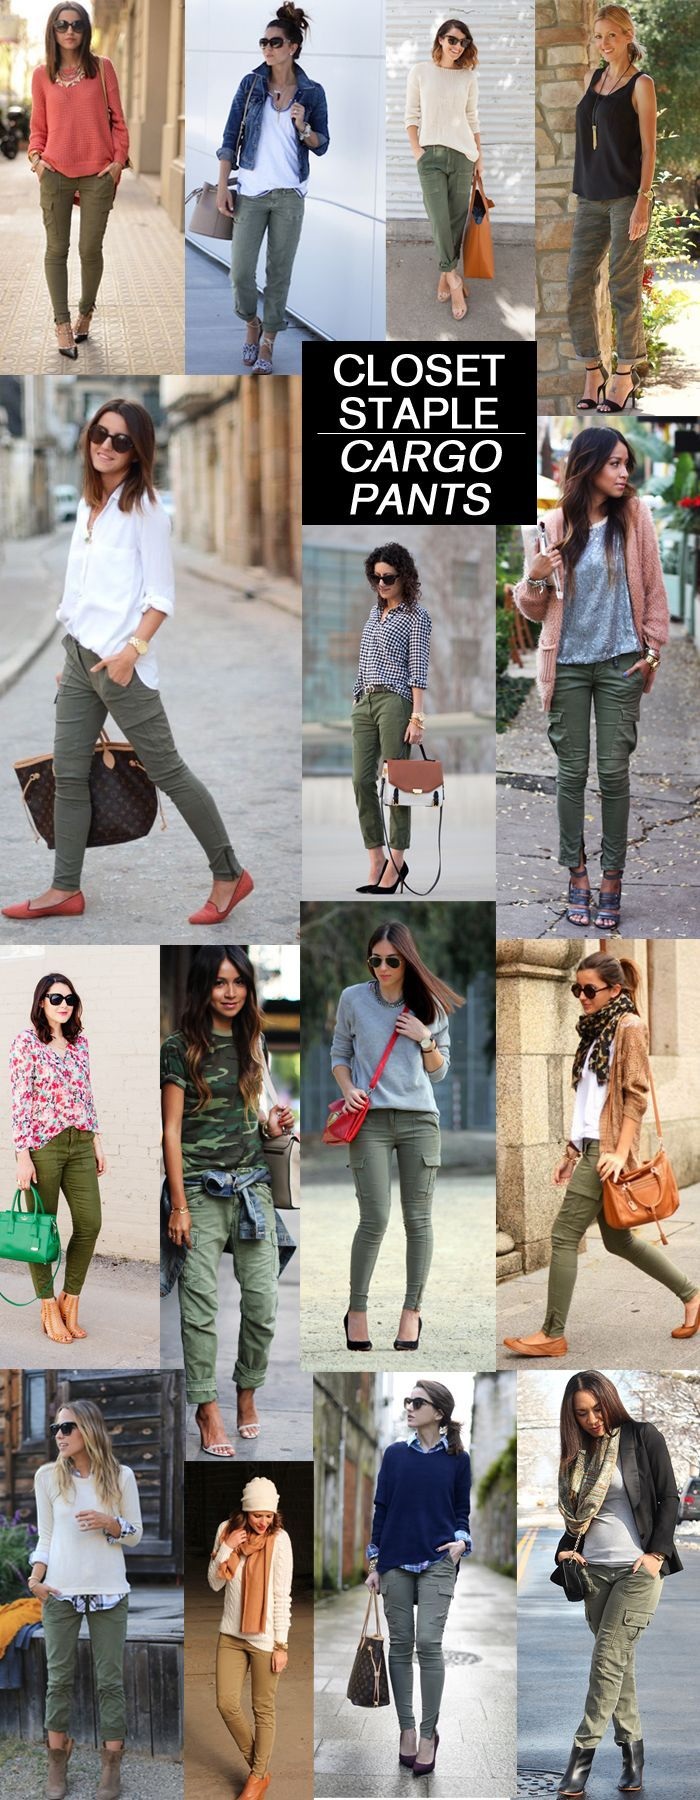 What Do You Wear With Green Pants